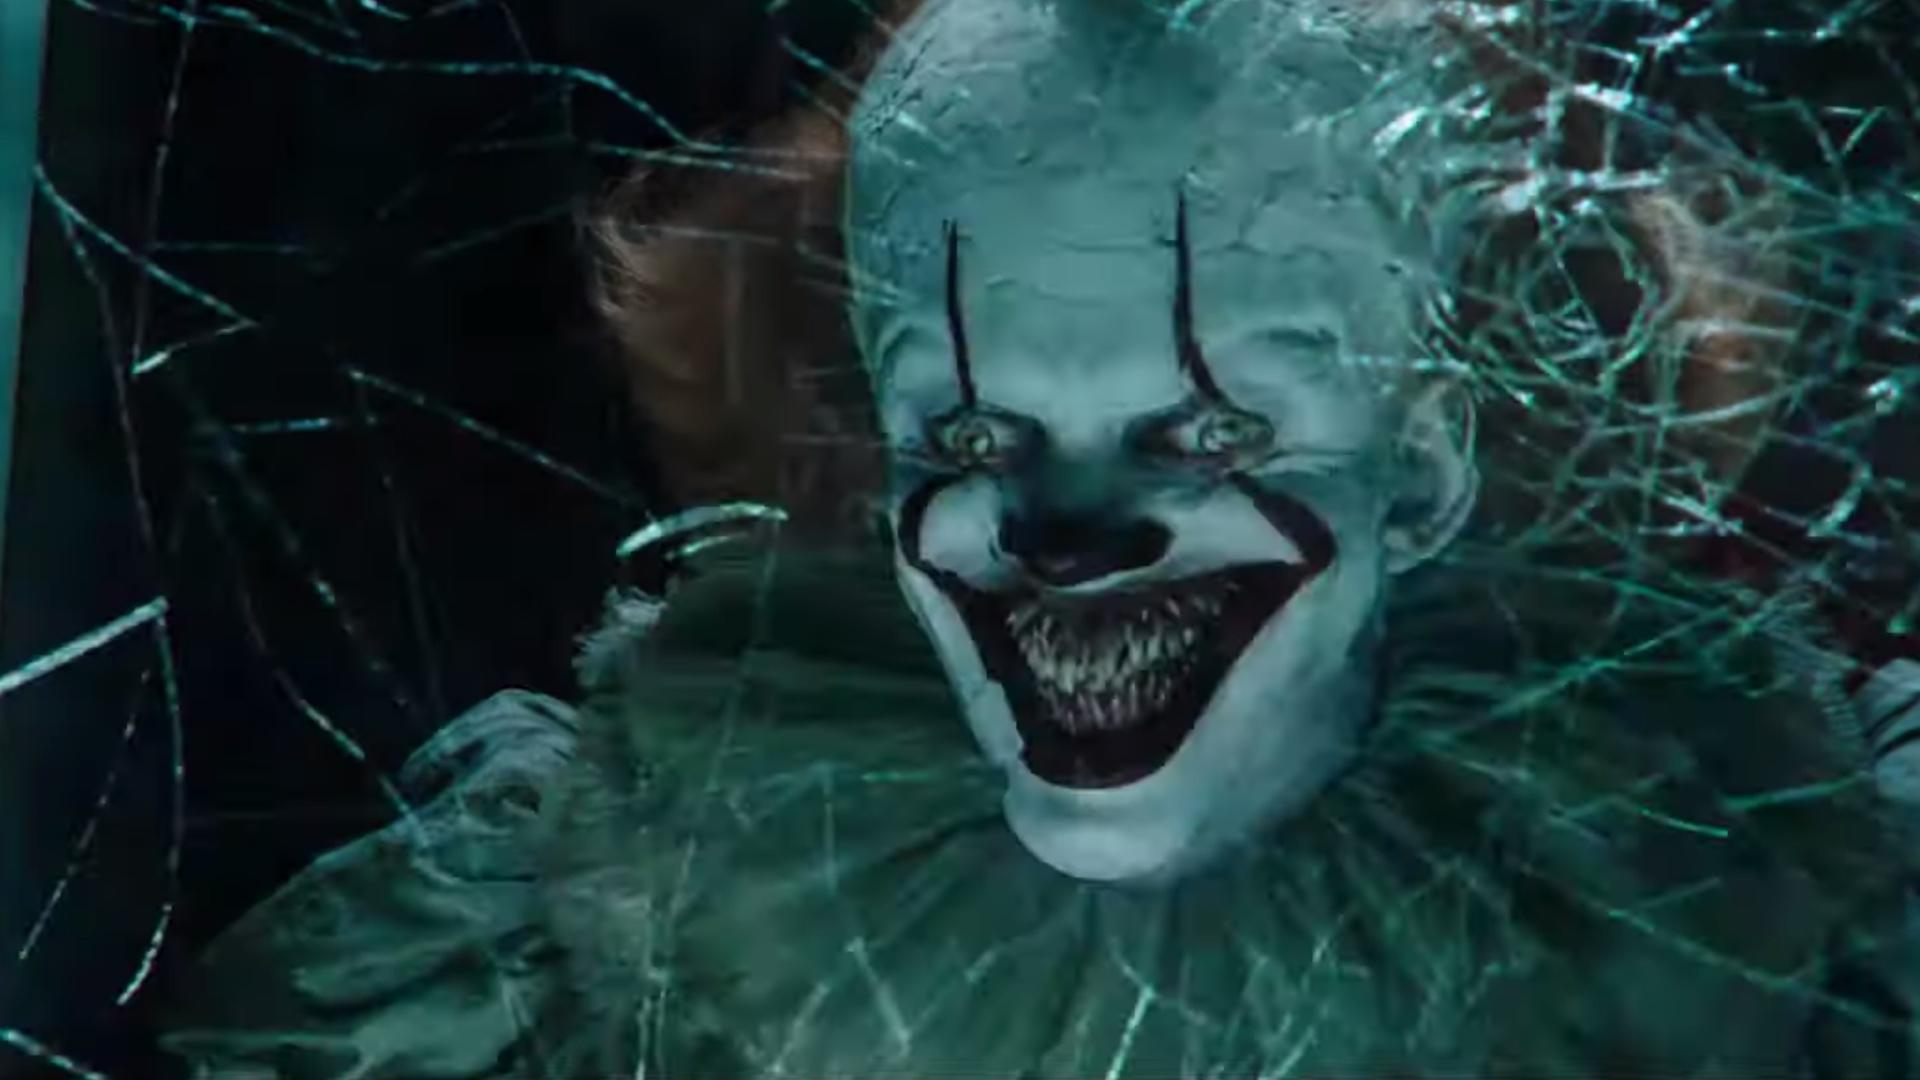 """New 'It Chapter Two' trailer shows why the sequel will be the bloodiest movie in Hollywood history: '""""Carrie"""" on steroids'"""